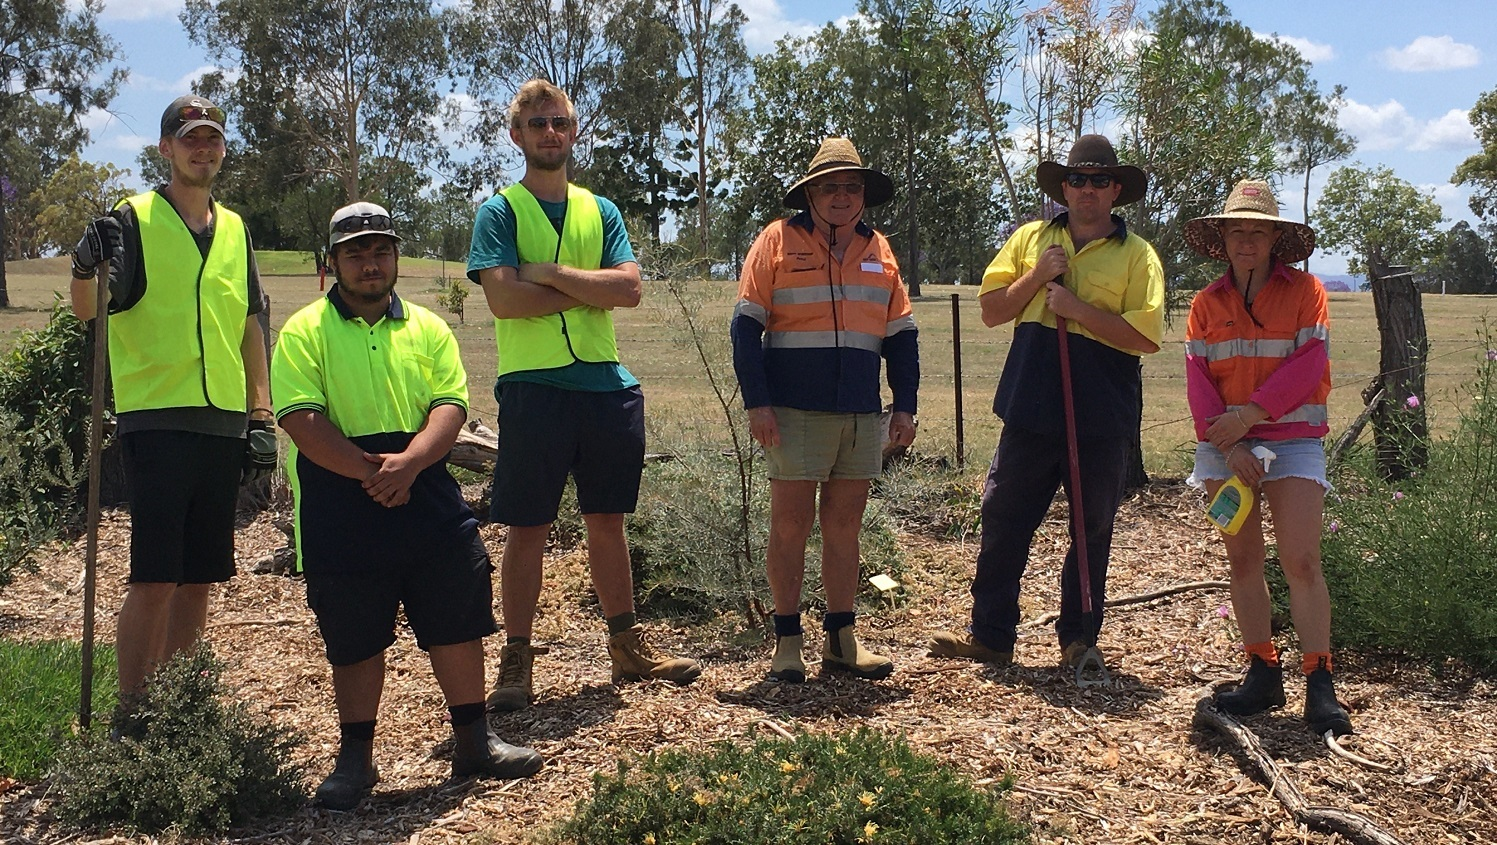 Work for the Dole activity recognised with multiple garden awards